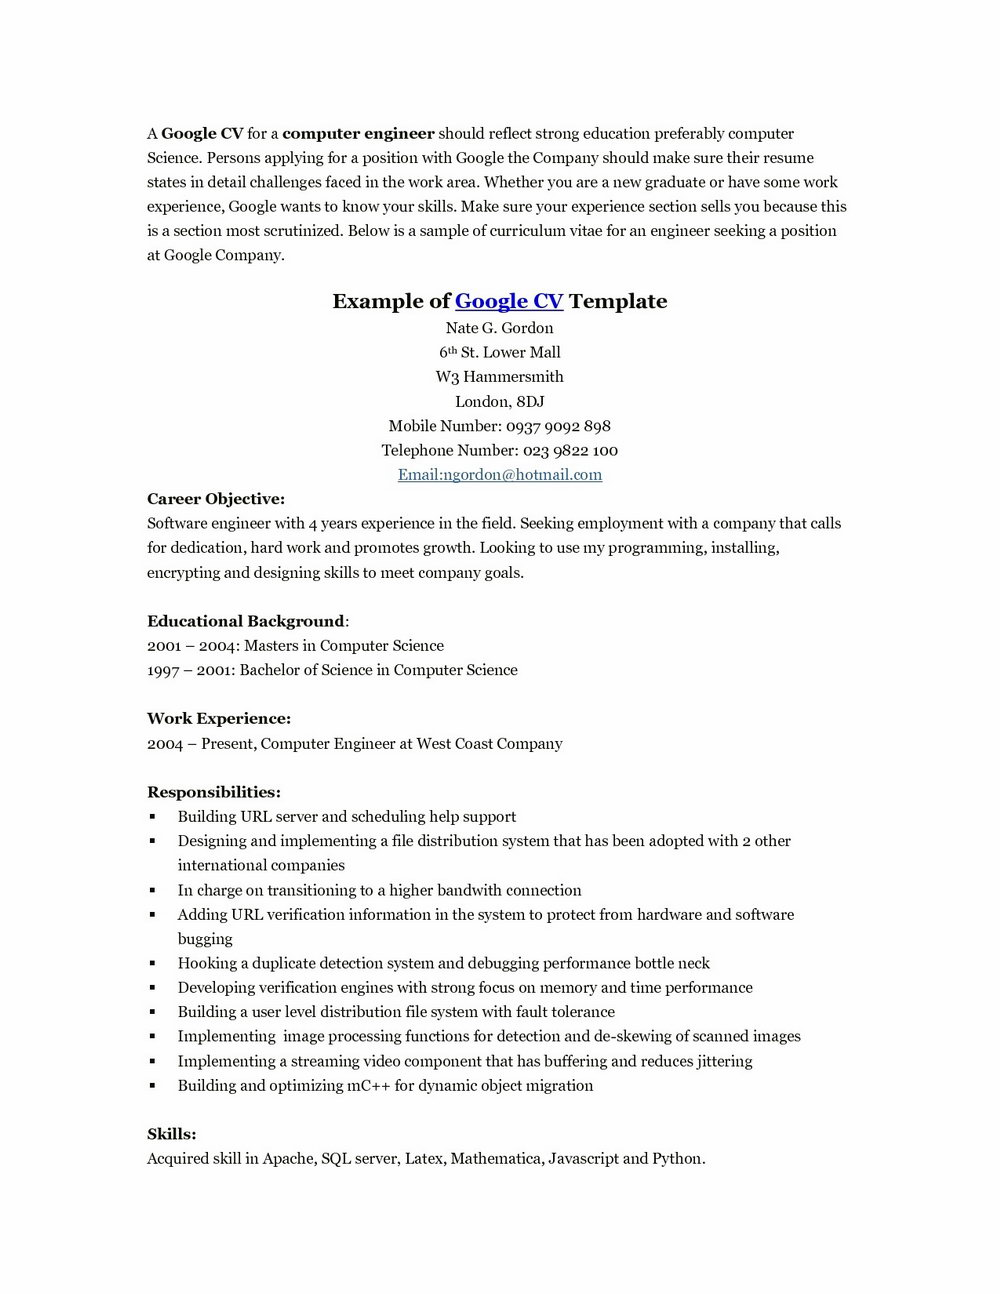 Resume Cover Letter Templates Free Download